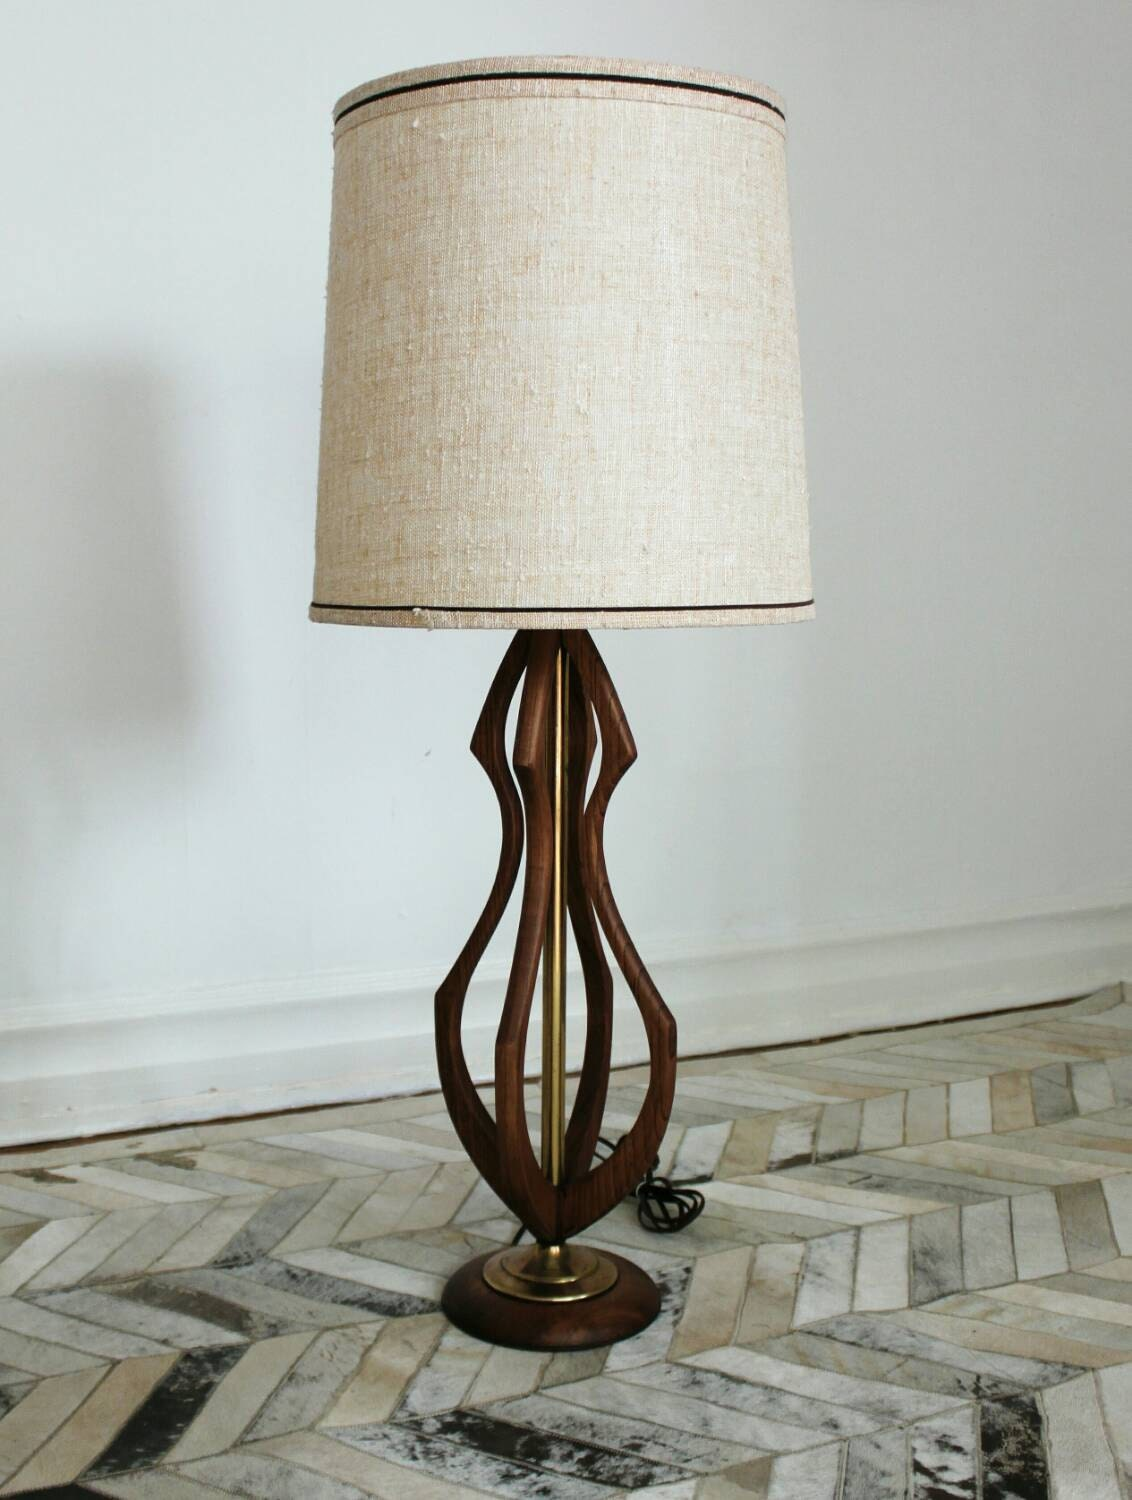 sold mid century wood and brass table lamp by paulovnia on etsy. Black Bedroom Furniture Sets. Home Design Ideas